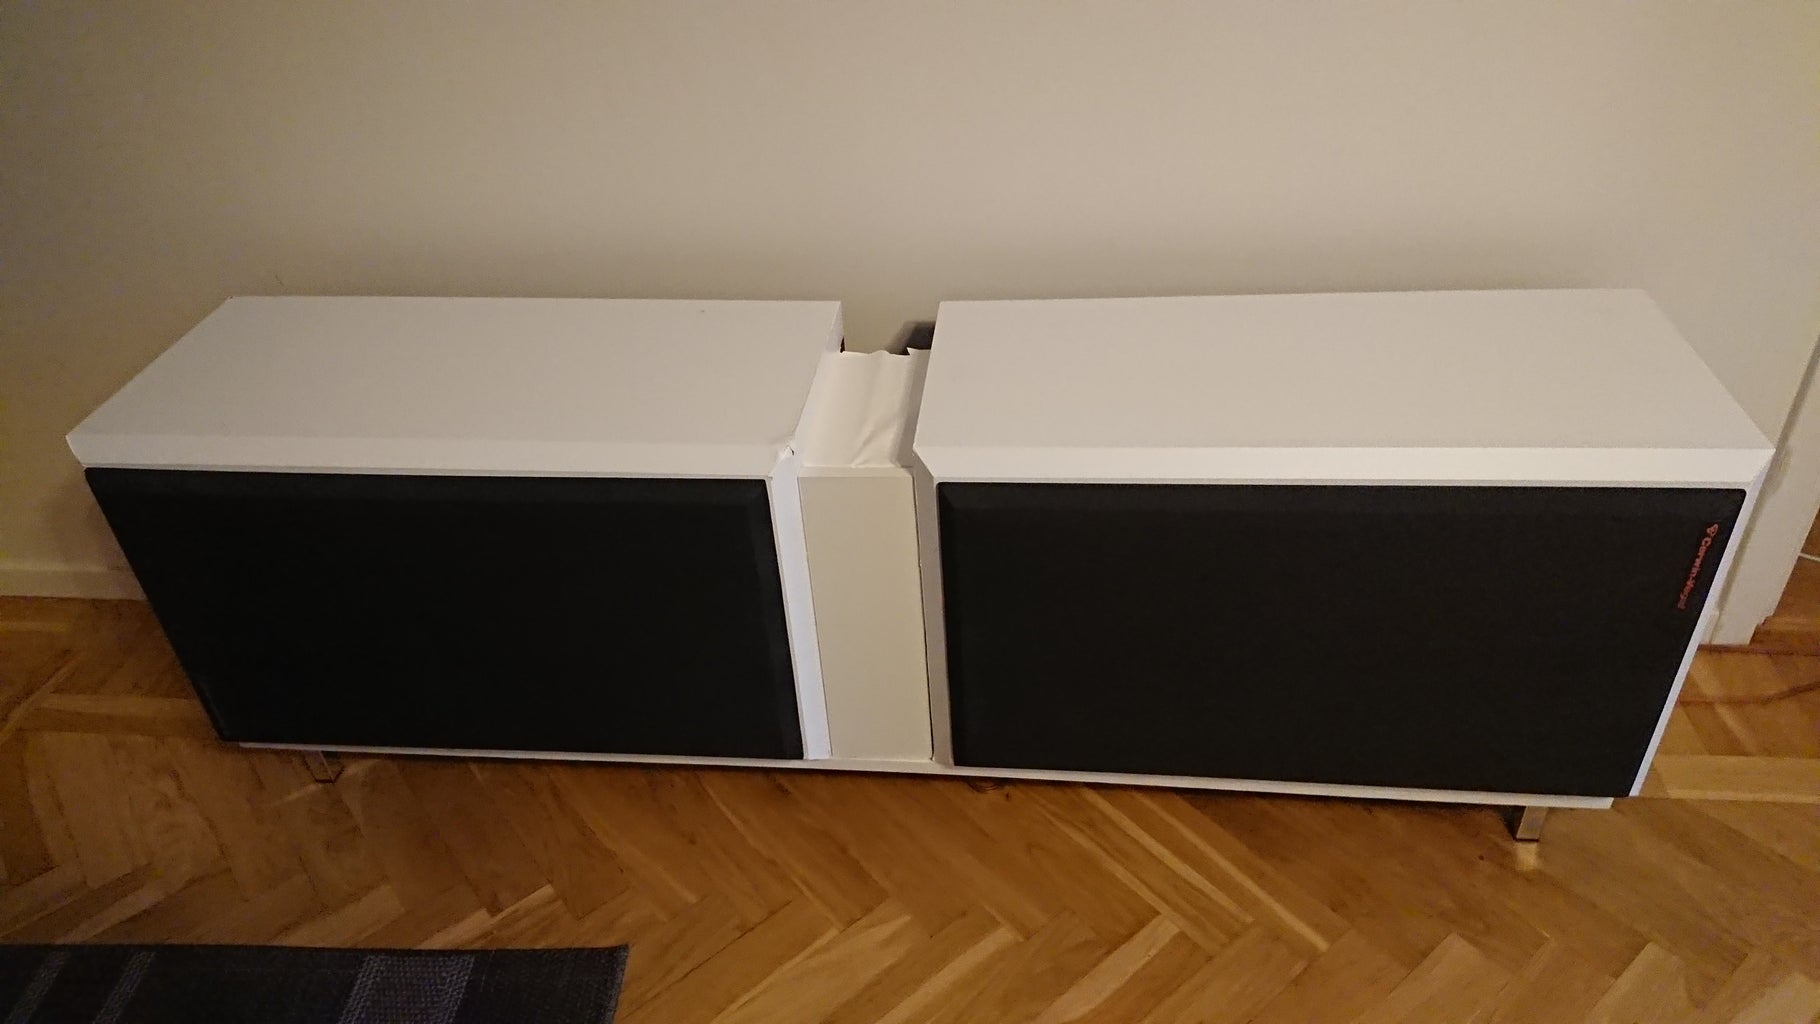 Add the Speakers